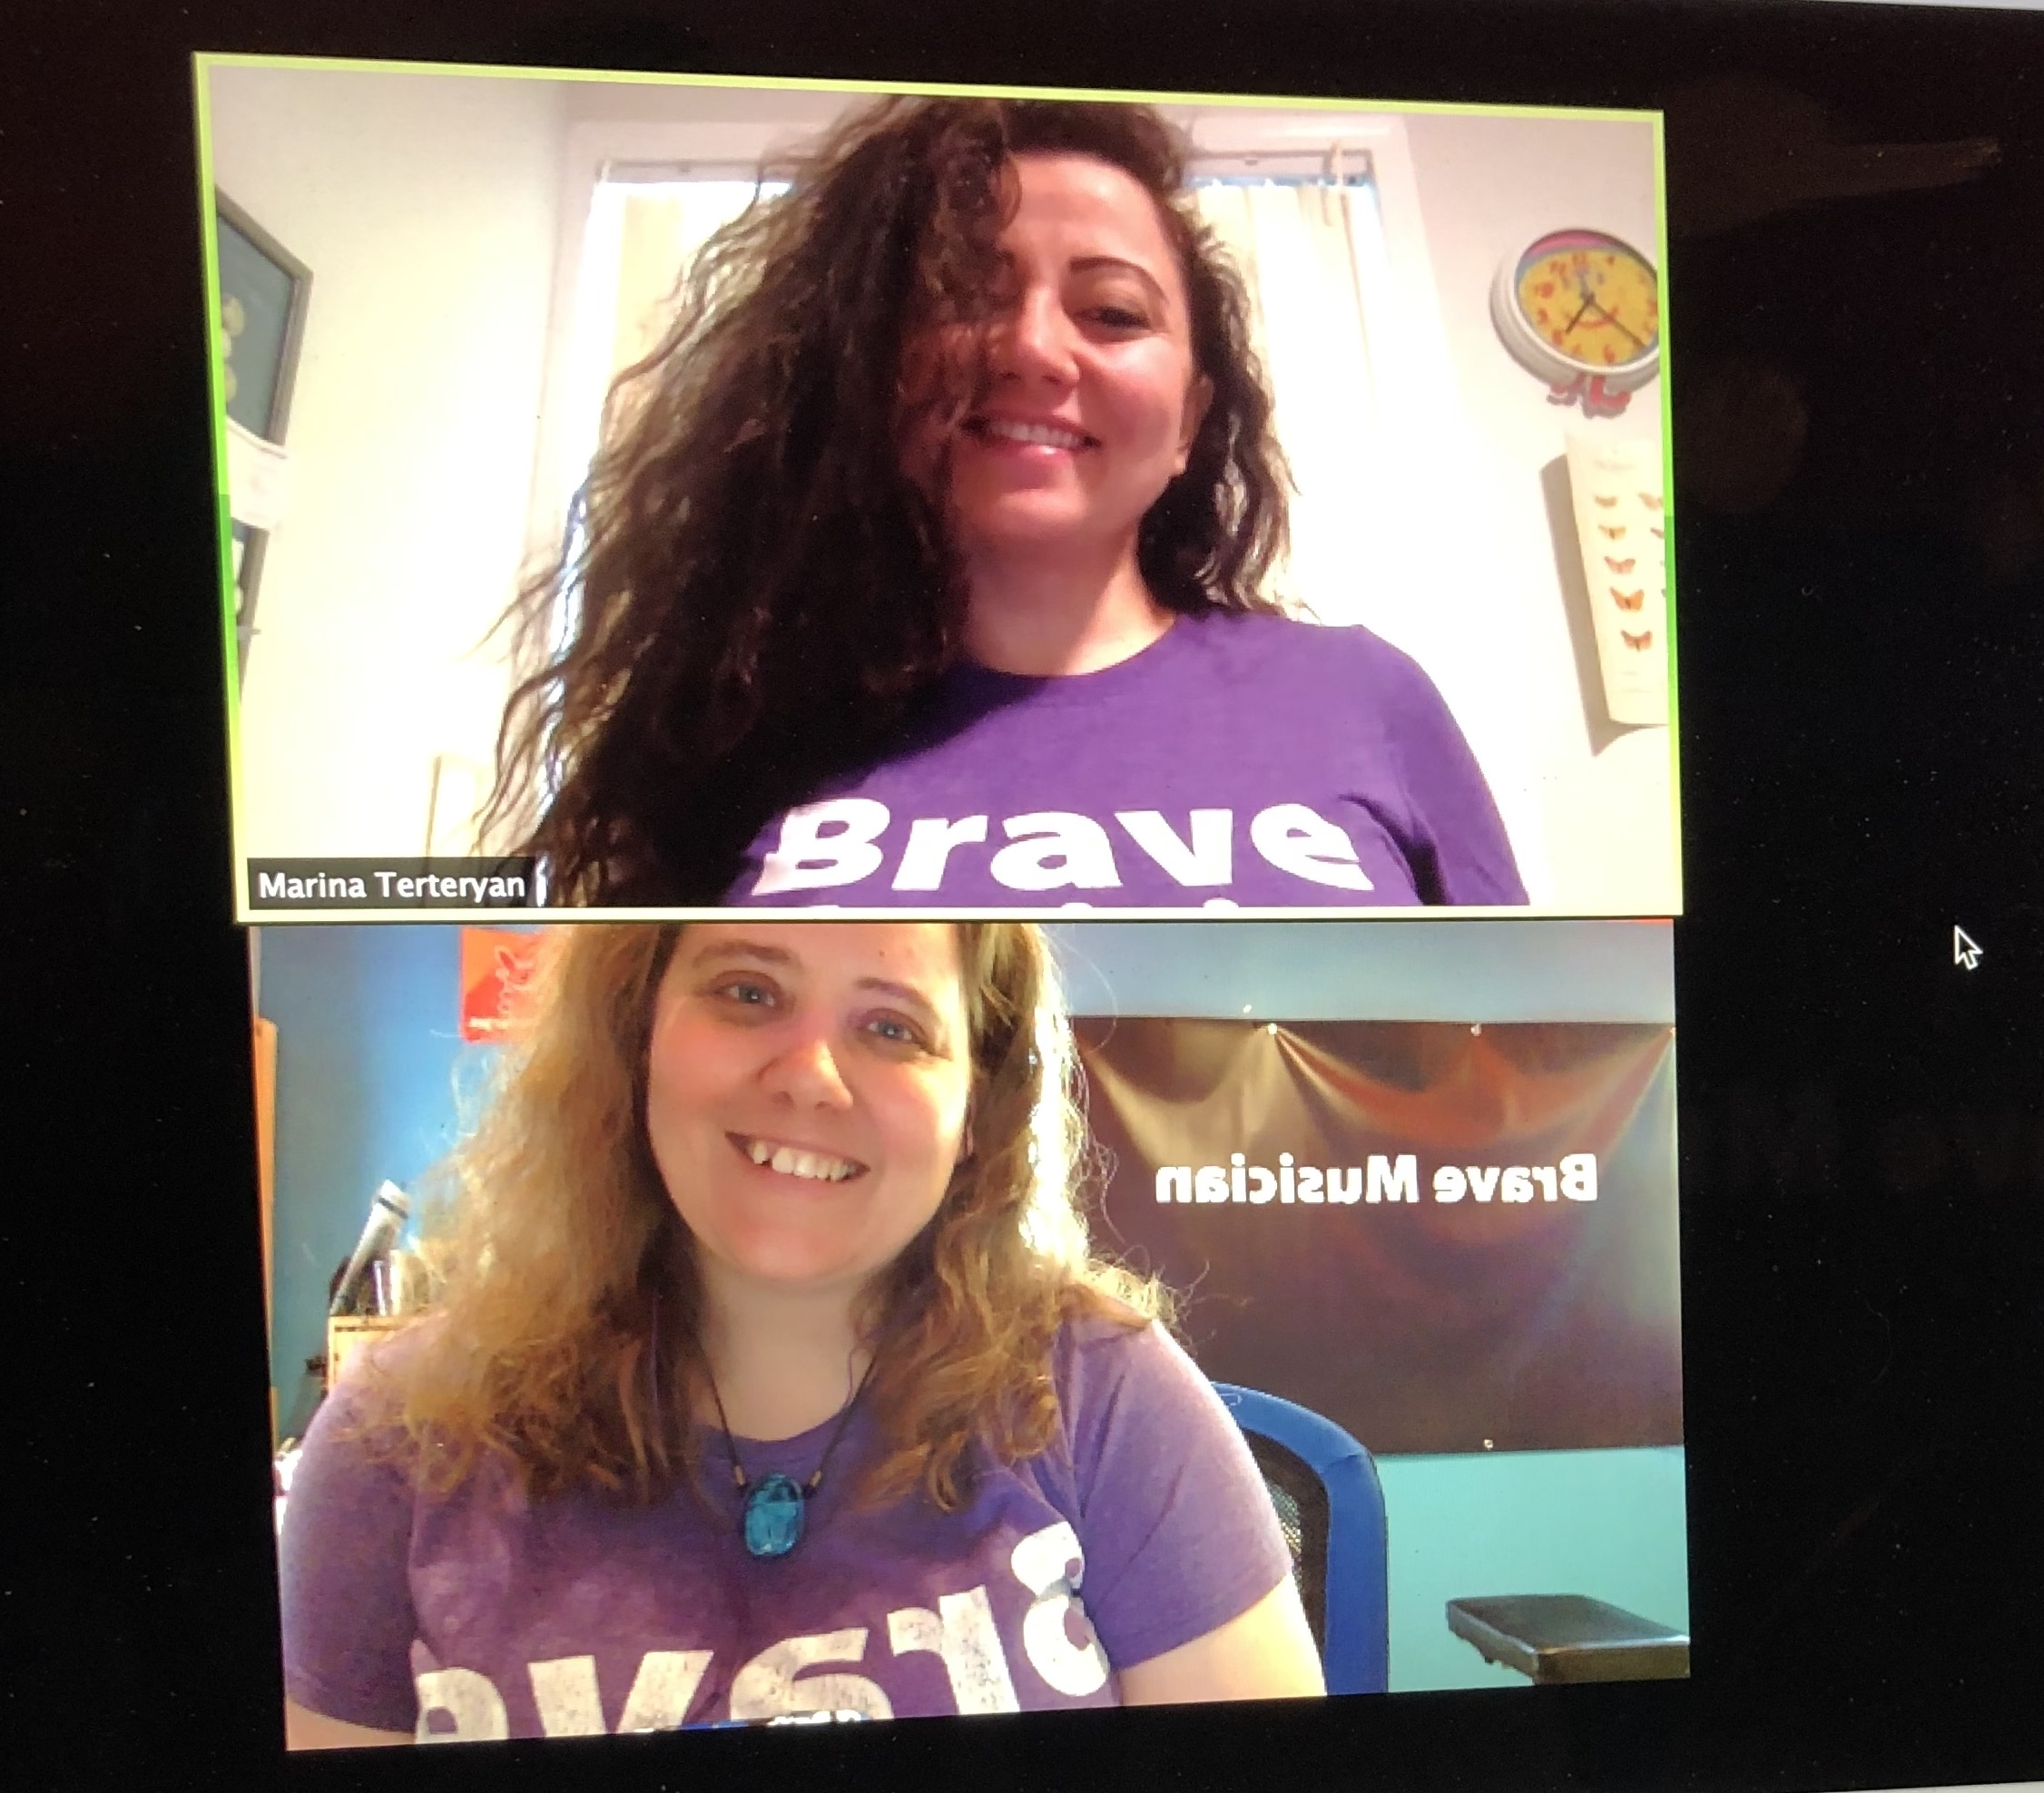 Brave Musician founders Monica Shriver and Marina Terteryan sporting their Brave Musician t-shirts and smiling for the camera as they record the podcast online. Technology is so cool!